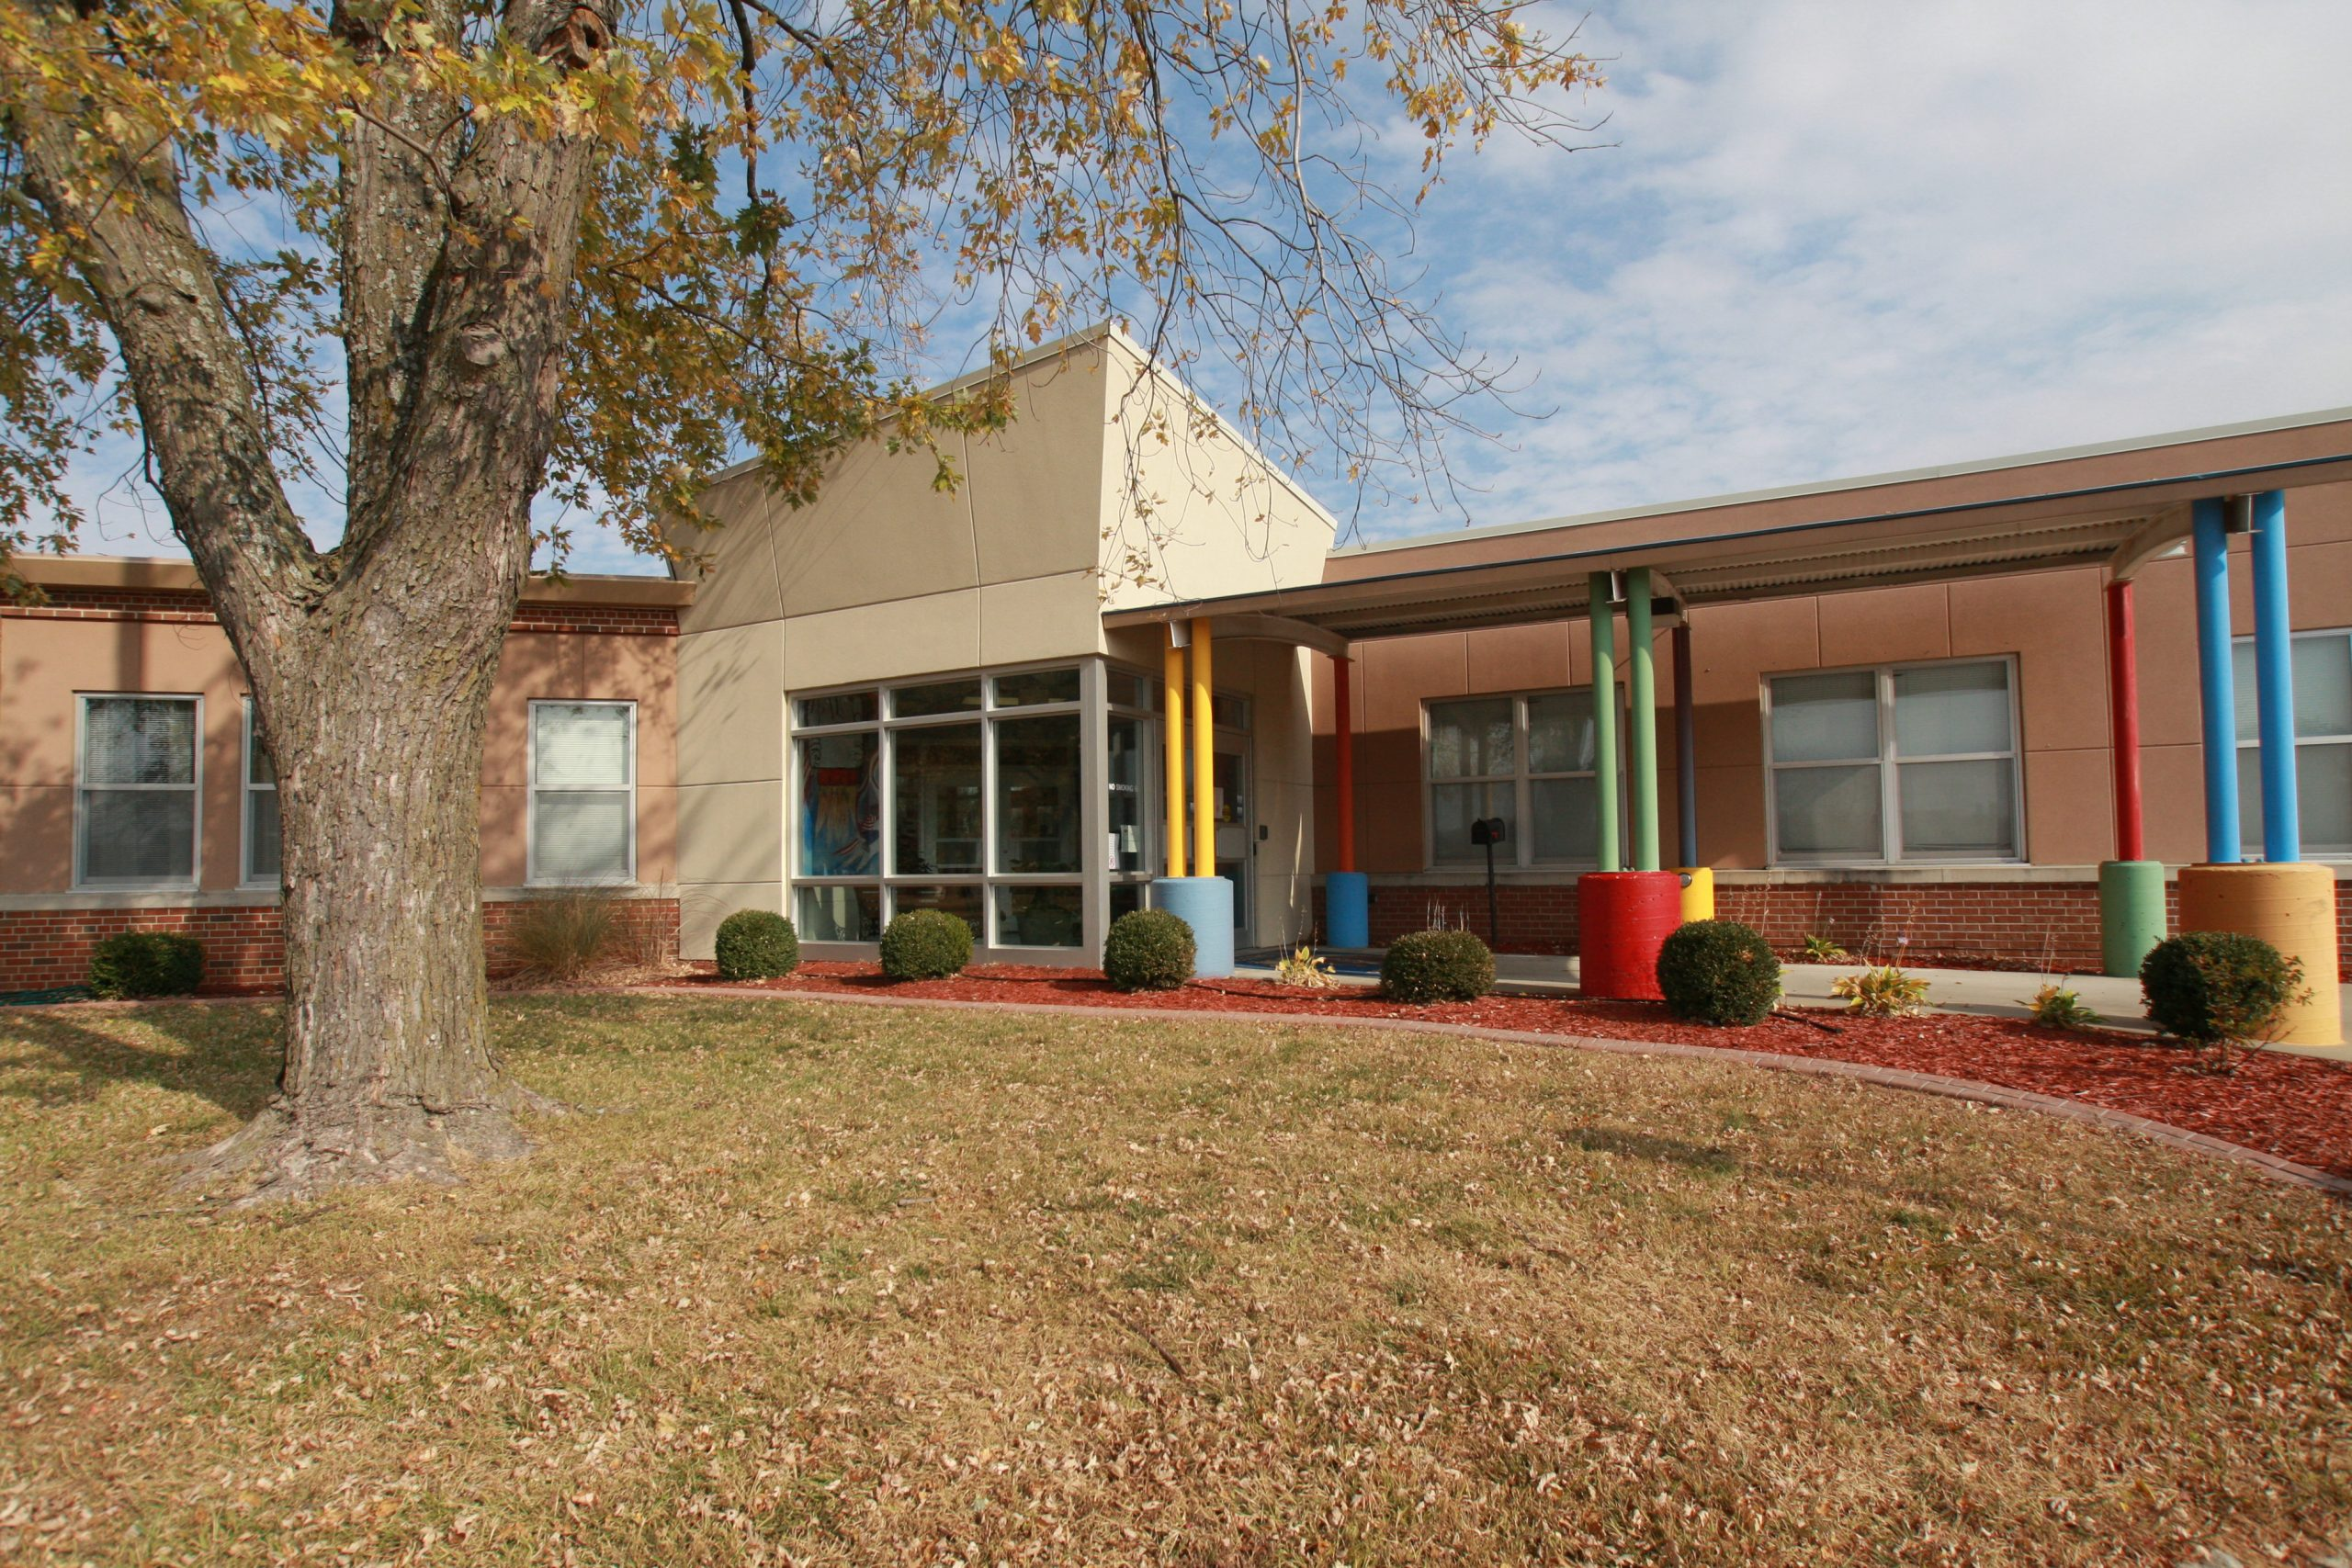 Randall Elementary School Intended For School Break For Independence. Missouri Schools